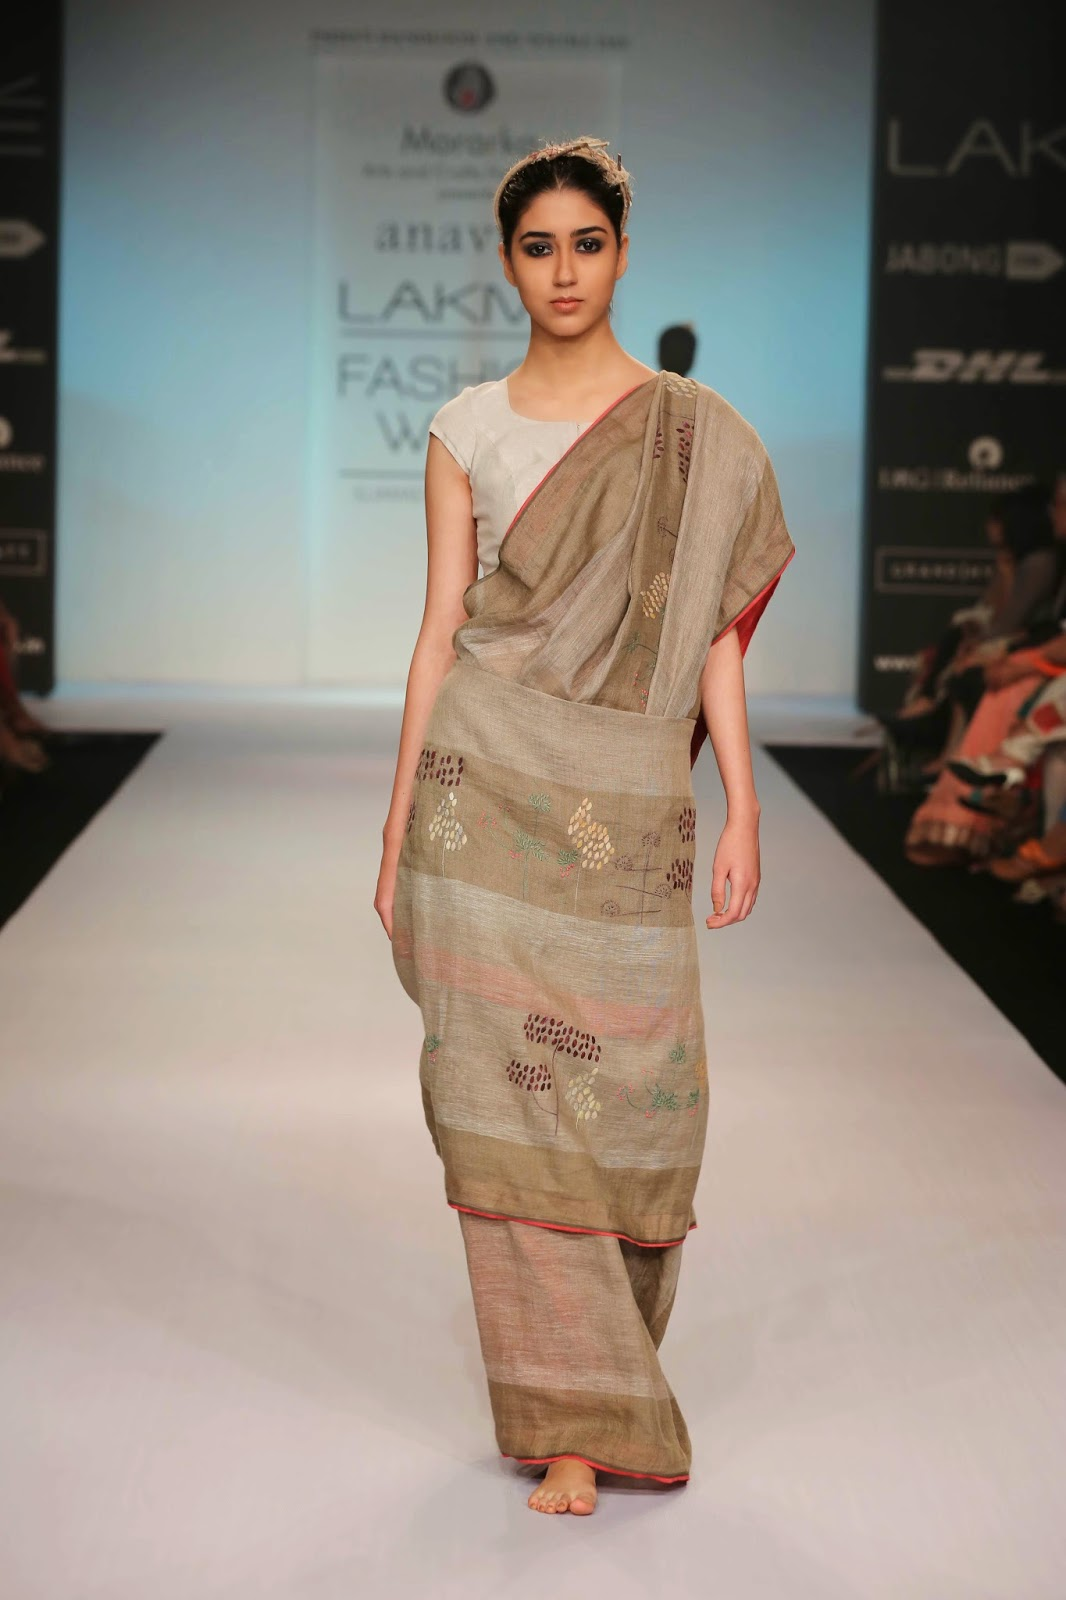 """For her debut appearance Anavila Sindu Misra took the audience at Lakmé Fashion Week Summer/Resort 2014 on an exotic fashionable journey with her collection called """"Secret Life of the Forest"""". Keeping hand-woven, linen as the basic fabric choice, Anavila used Jamdani weaves, hand batik, Sujani, Khatwa and hand block printing to add glamour to the saris."""